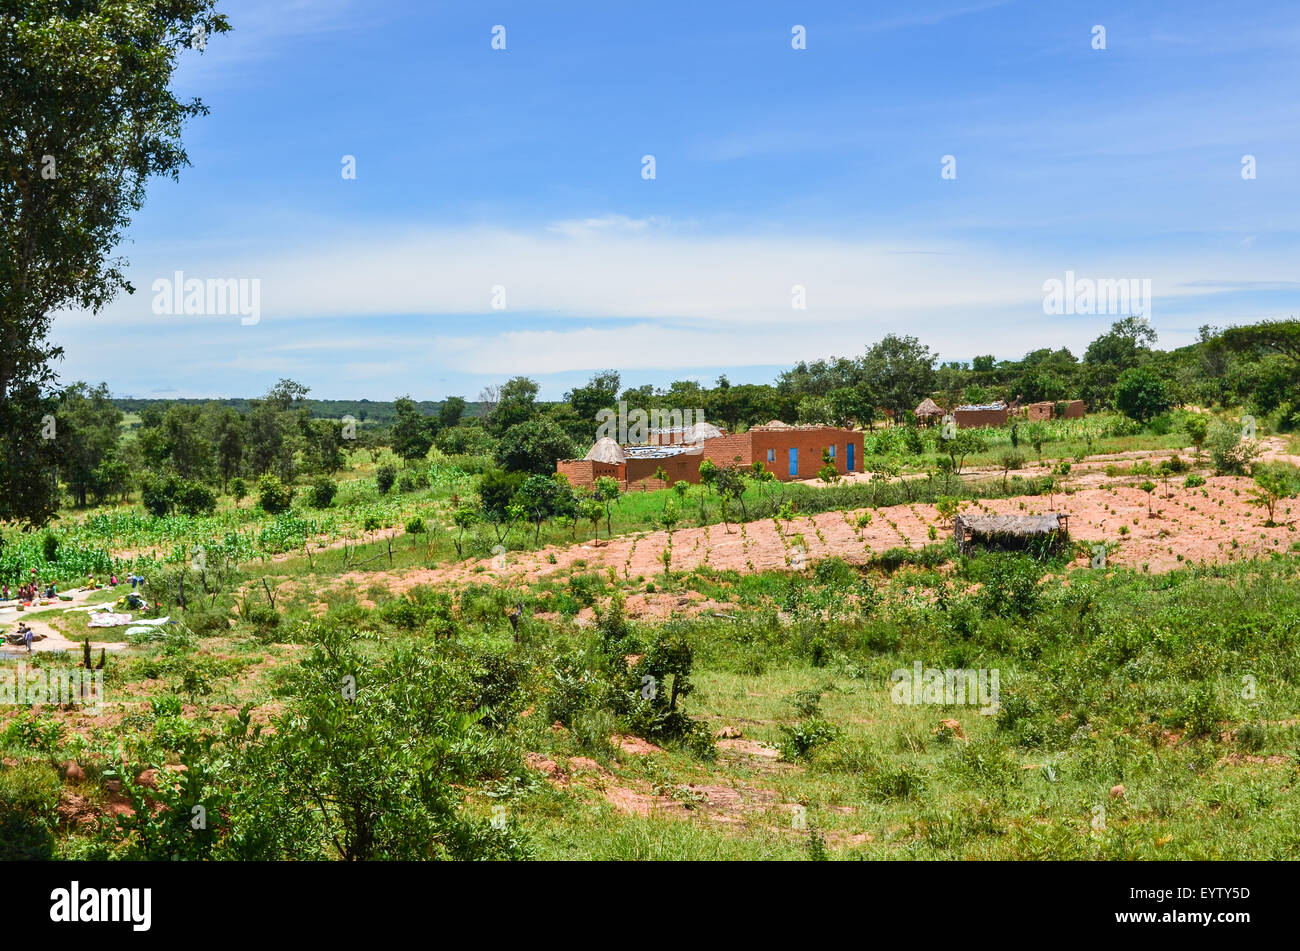 Scenery of rural Angola, crops, houses - Stock Image